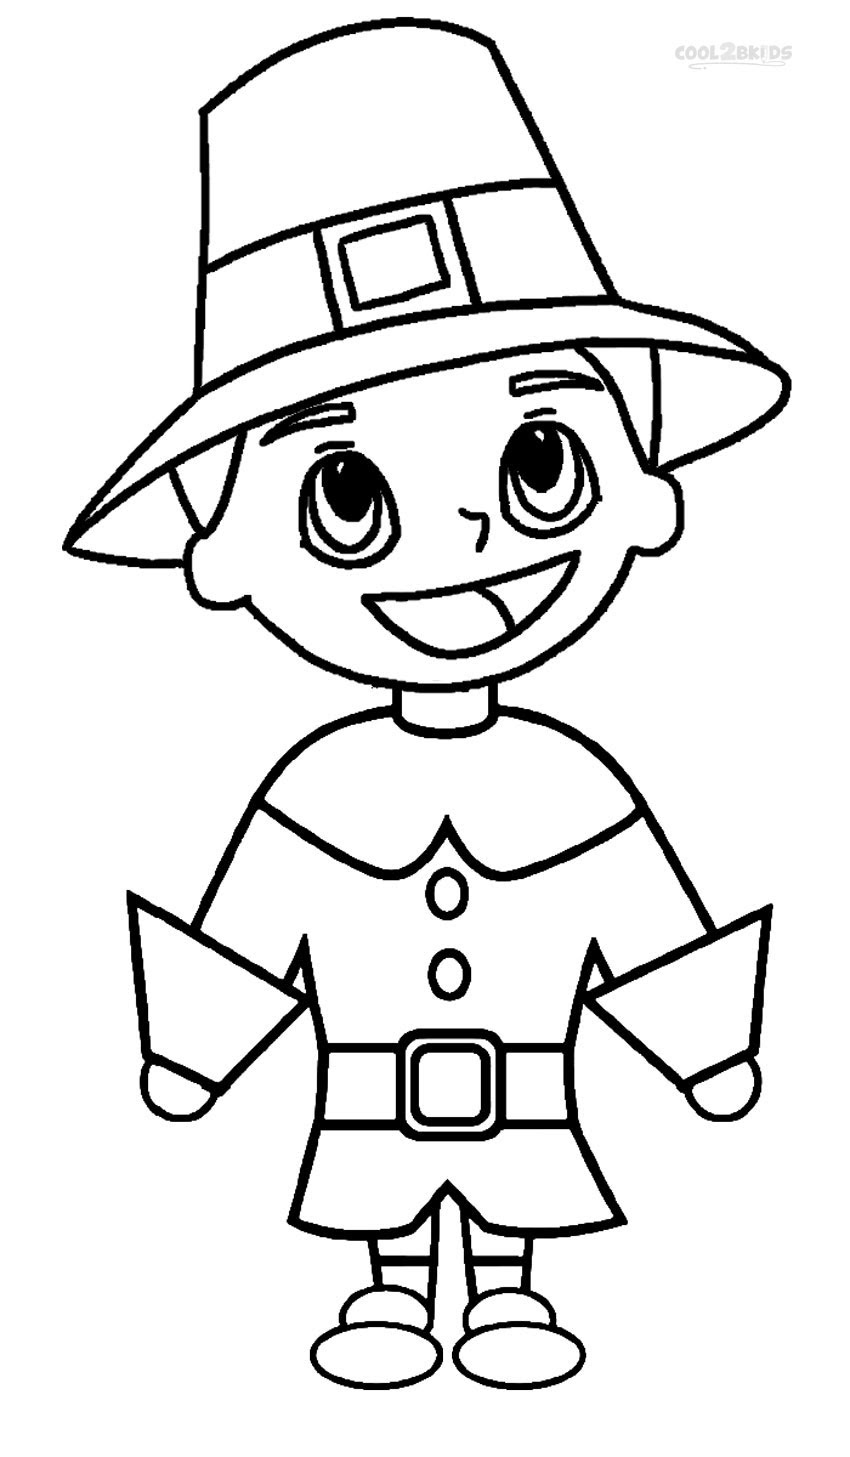 Free Printable Thanksgiving Coloring Pages For Kids Coloring Pages